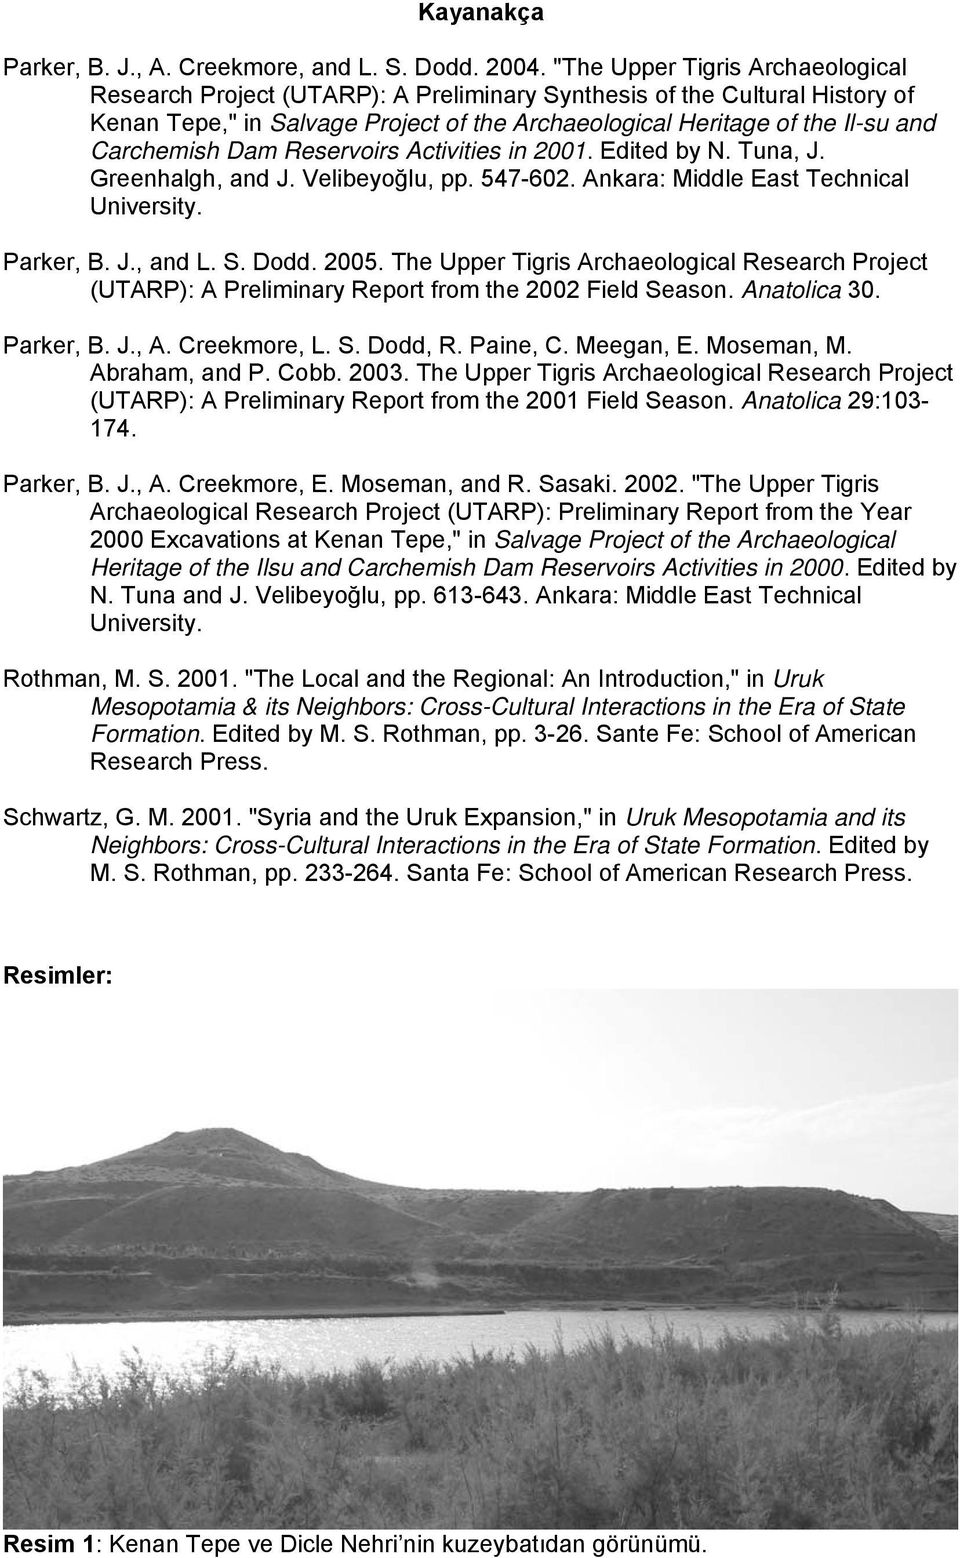 Carchemish Dam Reservoirs Activities in 2001. Edited by N. Tuna, J. Greenhalgh, and J. Velibeyoğlu, pp. 547-602. Ankara: Middle East Technical University. Parker, B. J., and L. S. Dodd. 2005.